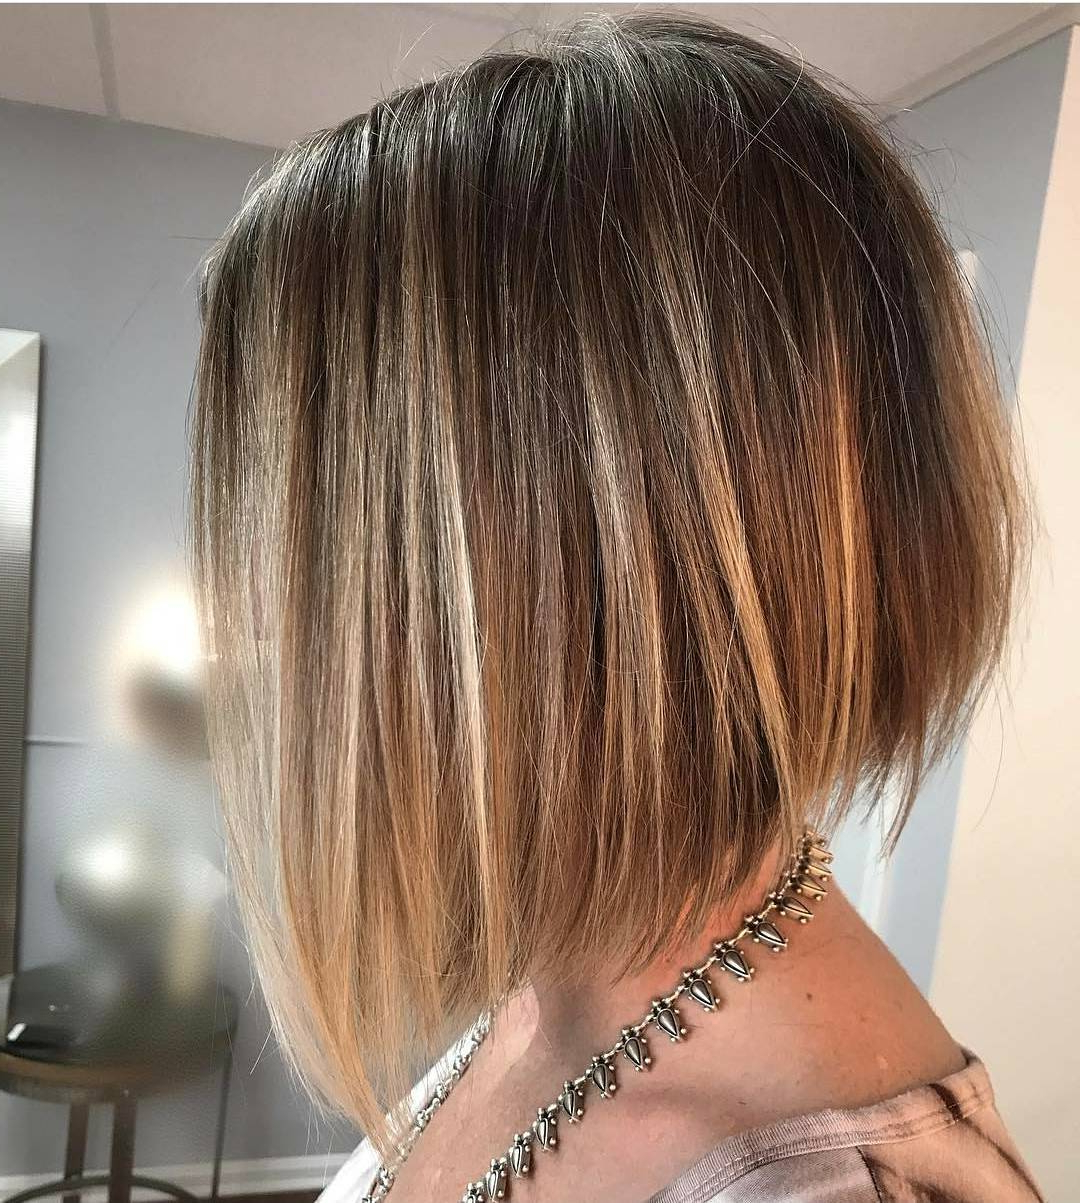 10 Flattering Short Straight Hairstyles 2019 Intended For Neat Short Rounded Bob Hairstyles For Straight Hair (Gallery 6 of 20)